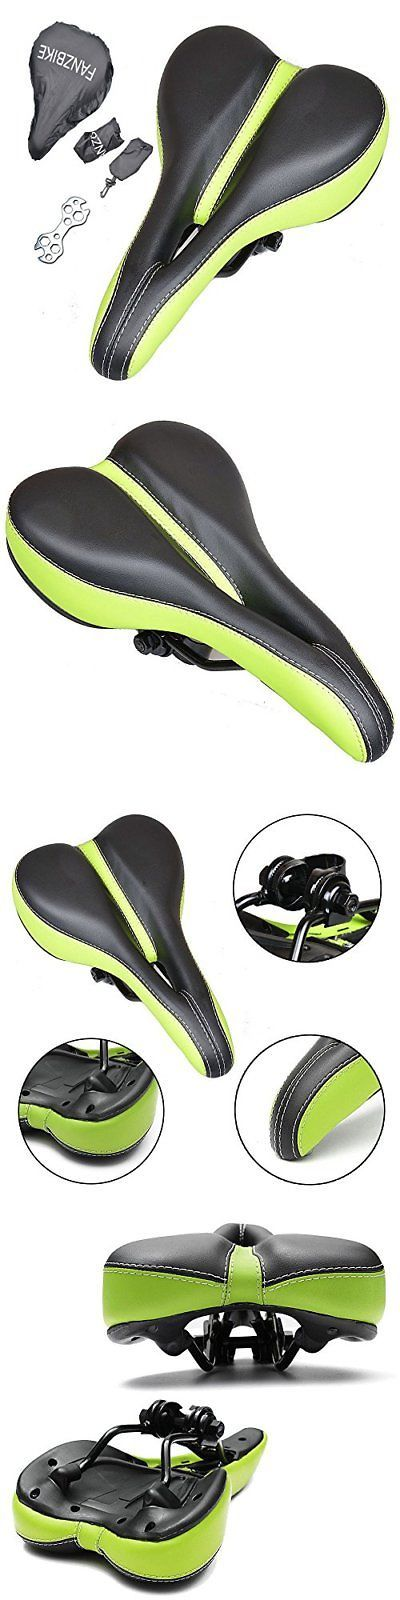 Saddle Covers Seat Covers 177838: Cushion Gel Bicycle Bike Seat For Men Comfortable Saddle Comfort Road Racing -> BUY IT NOW ONLY: $30.95 on eBay!